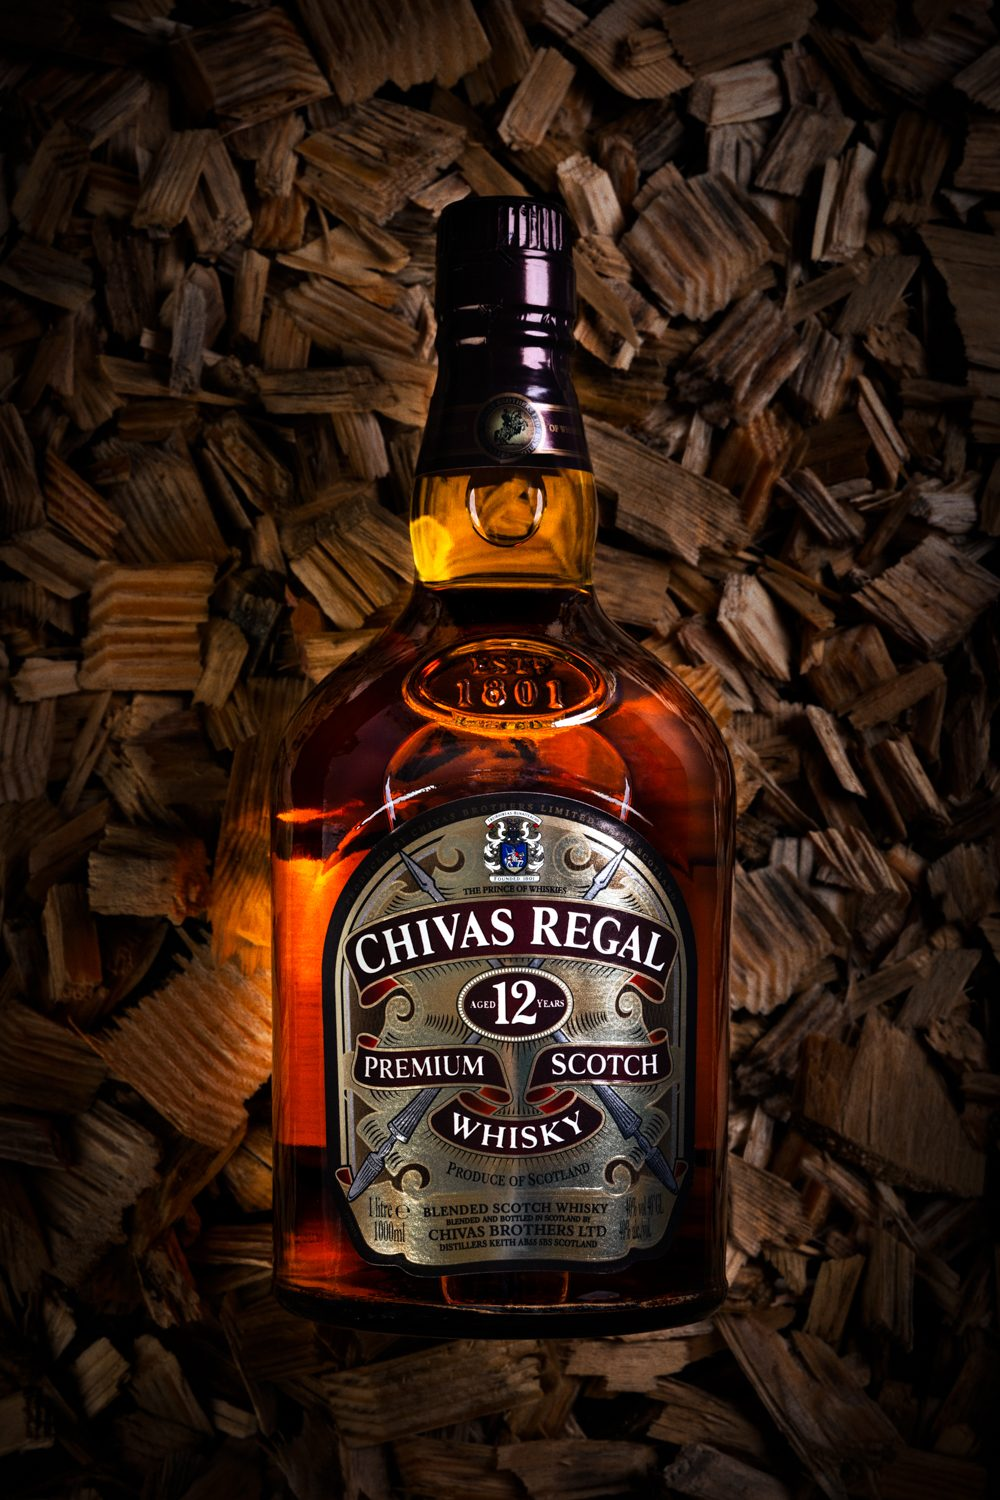 Chivas Regal by Fonnesbo